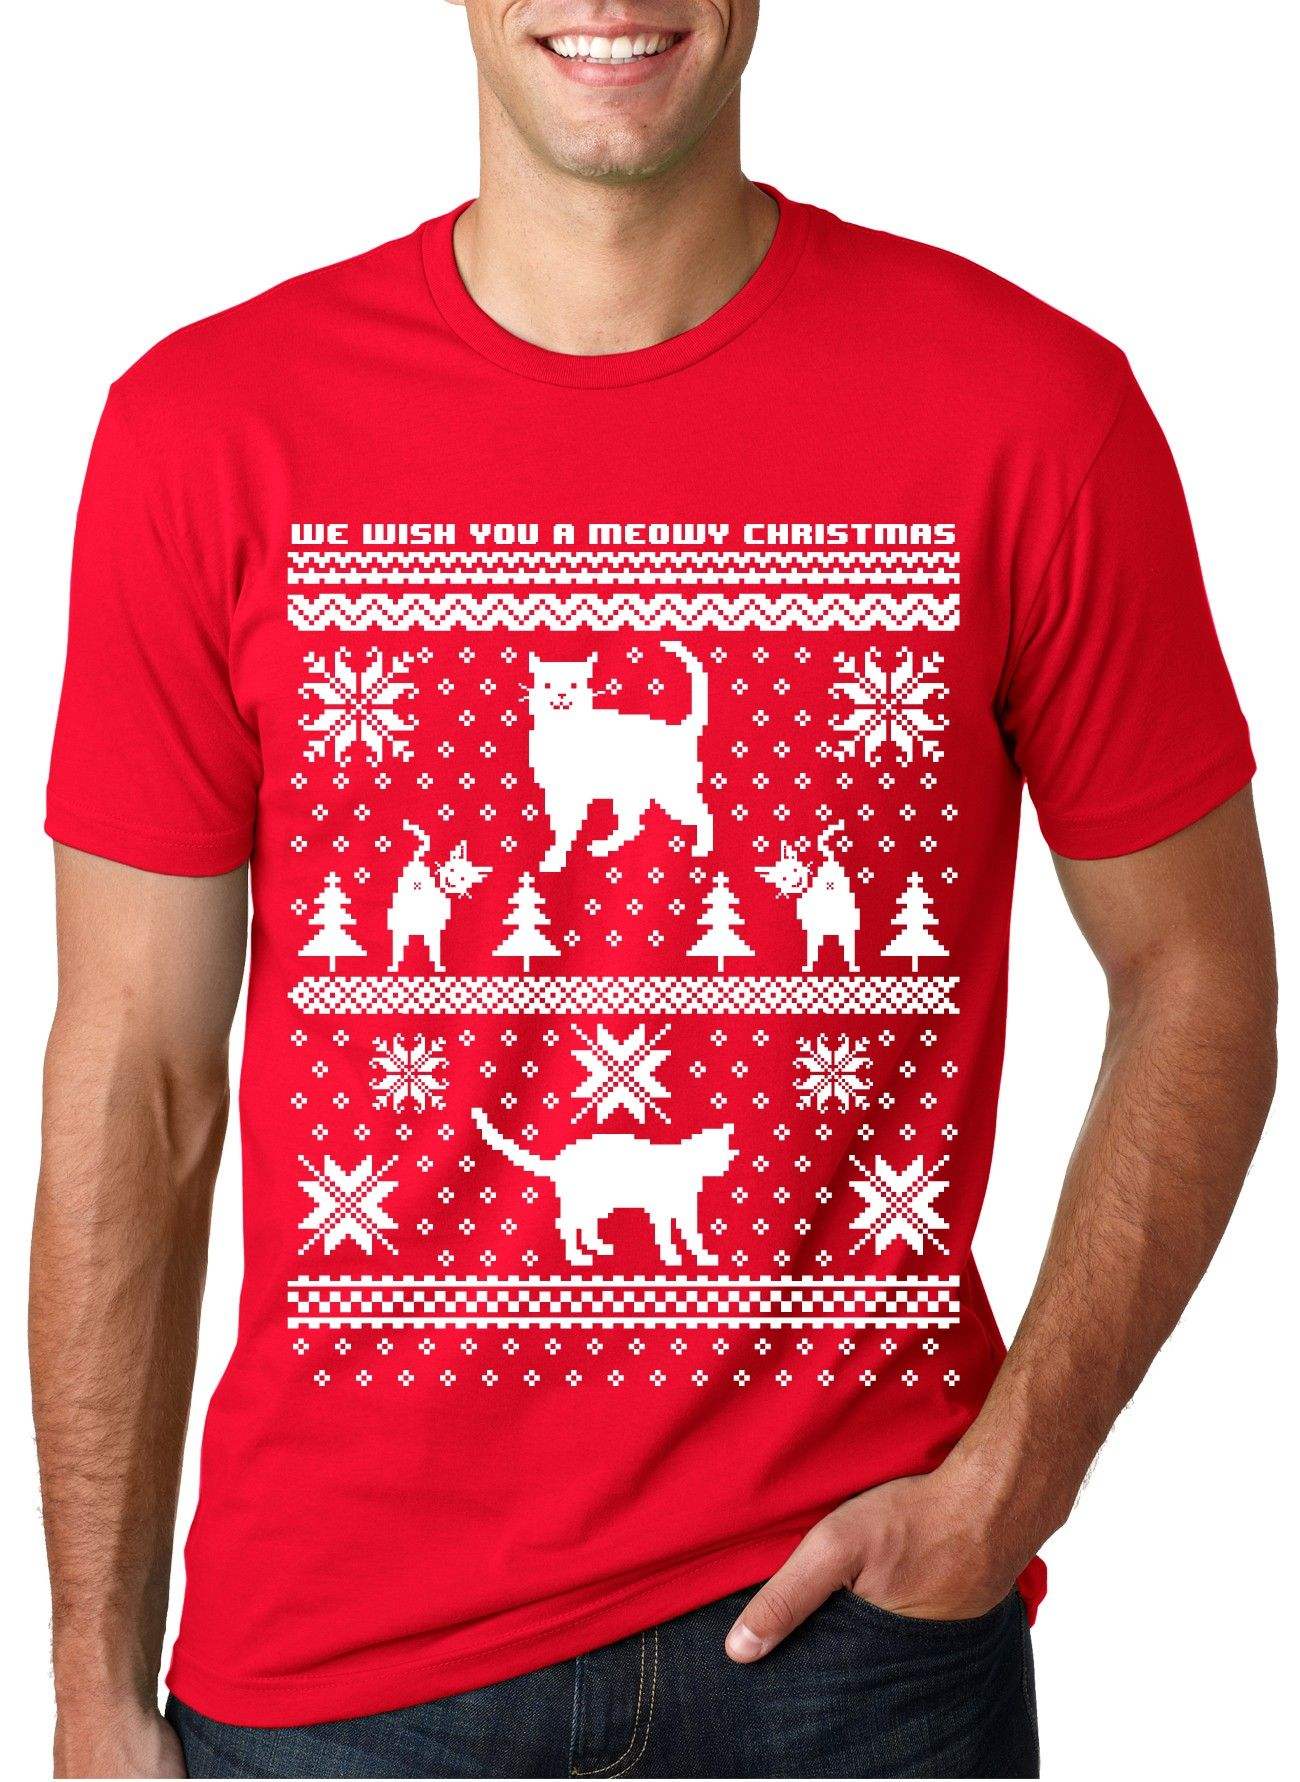 6533c678287 The super soft t-shirt printed with a funny cat ugly sweater design to  celebrate Christmas in!